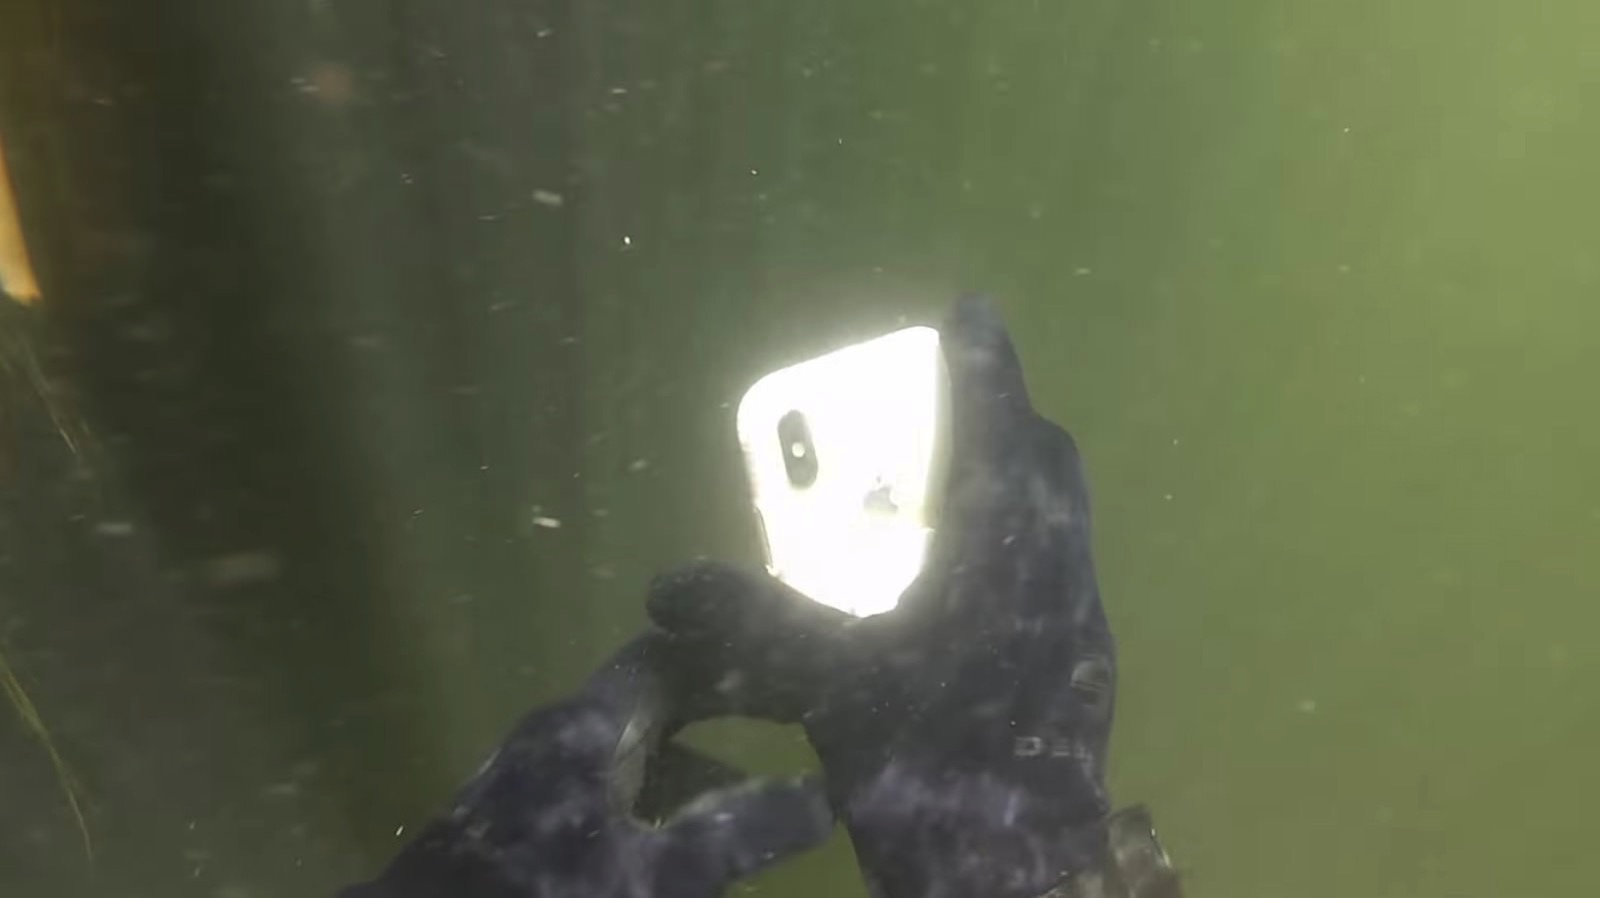 iphone-x-found-in-river-after-2-weeks.jpg